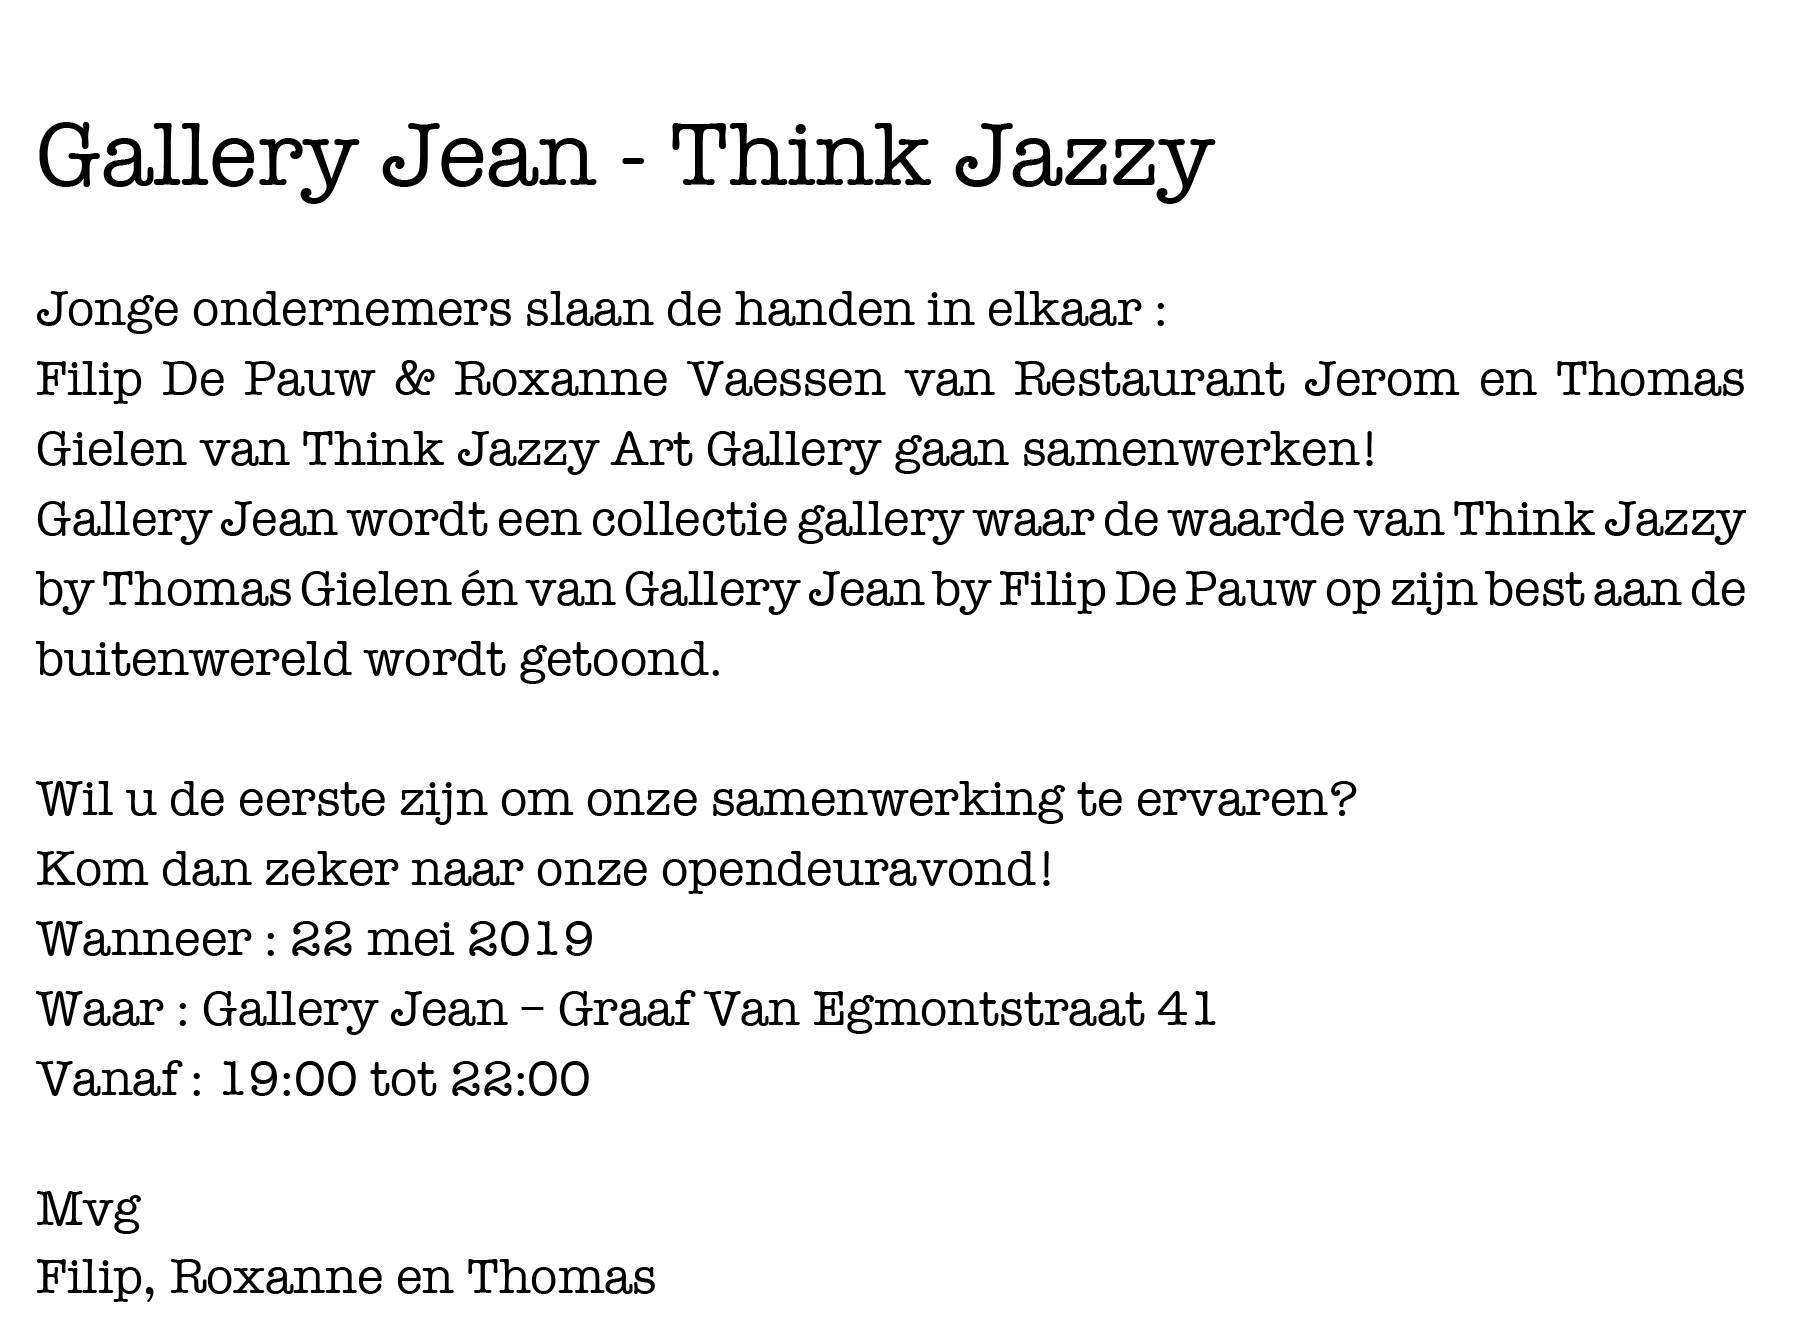 Uitnoding Gallery Jean -2